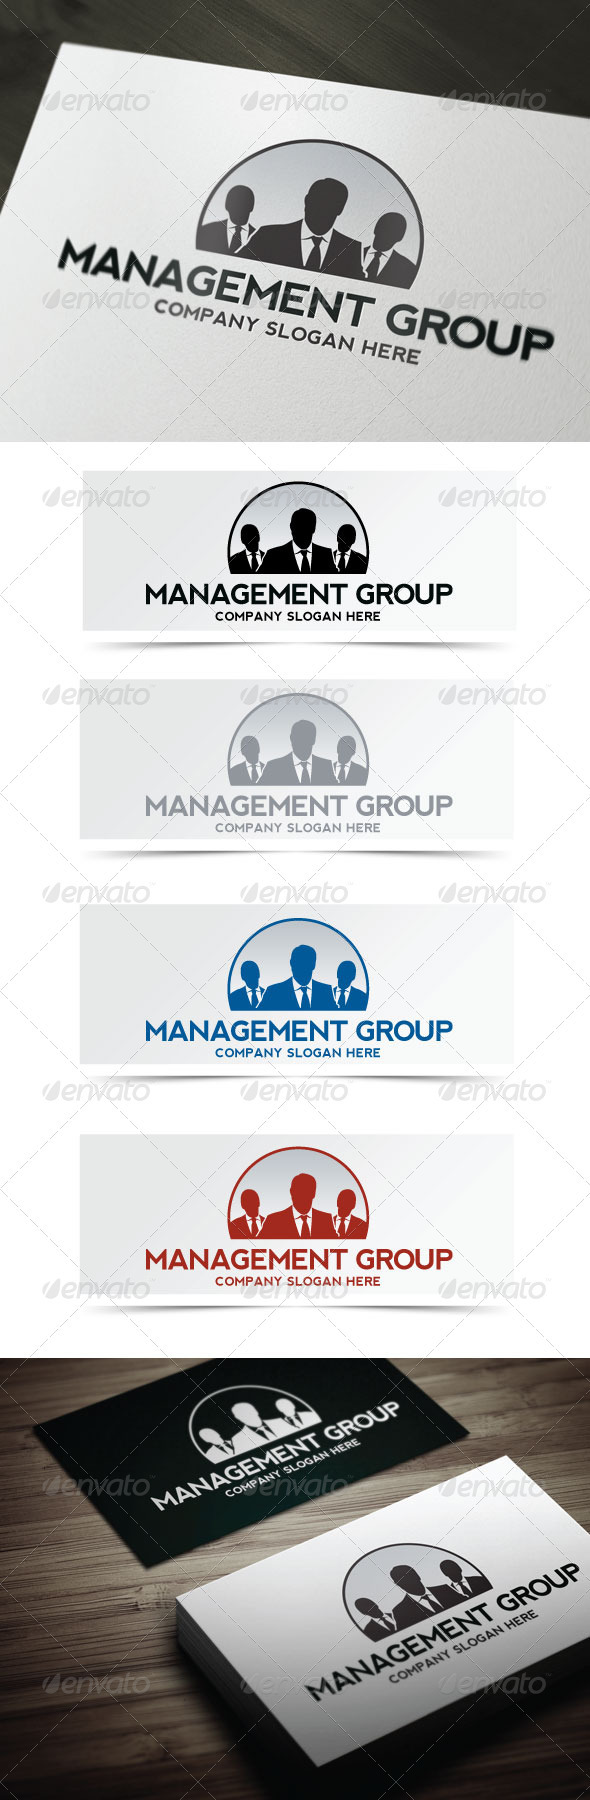 GraphicRiver Management Group 3946897